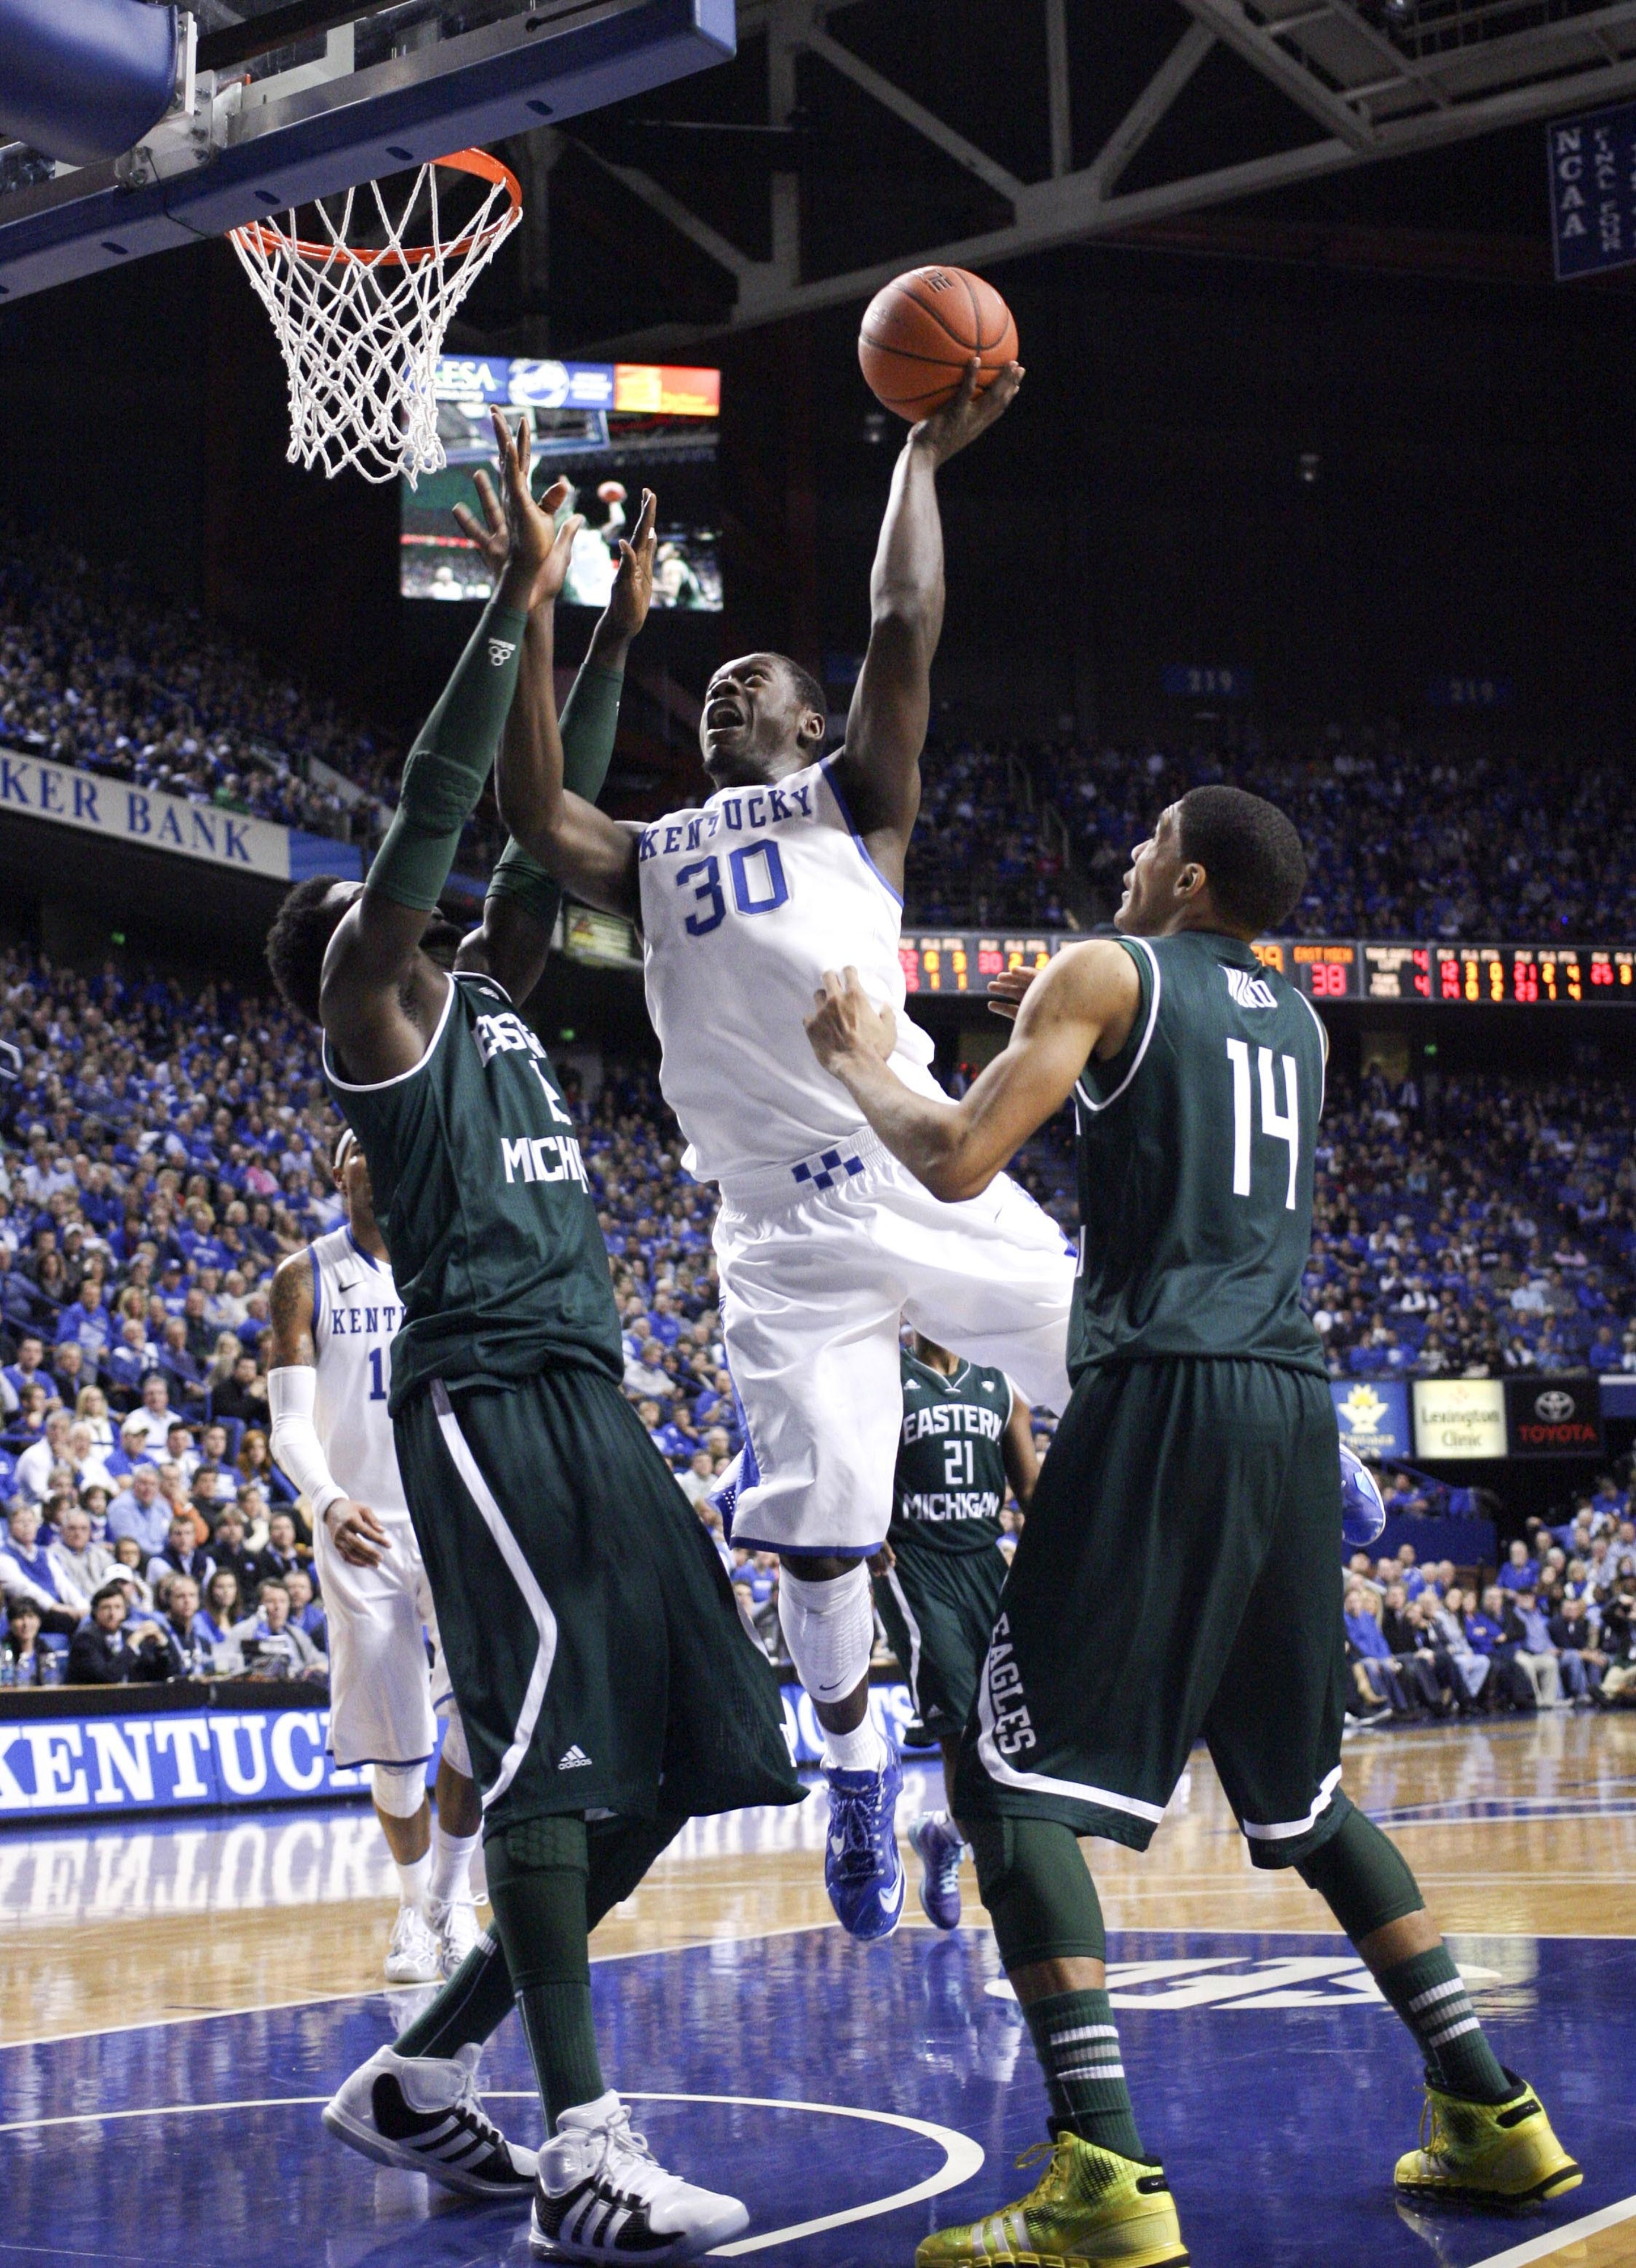 Kentucky vs. Eastern Michigan final score: Wildcats pull away late for 81-63 victory